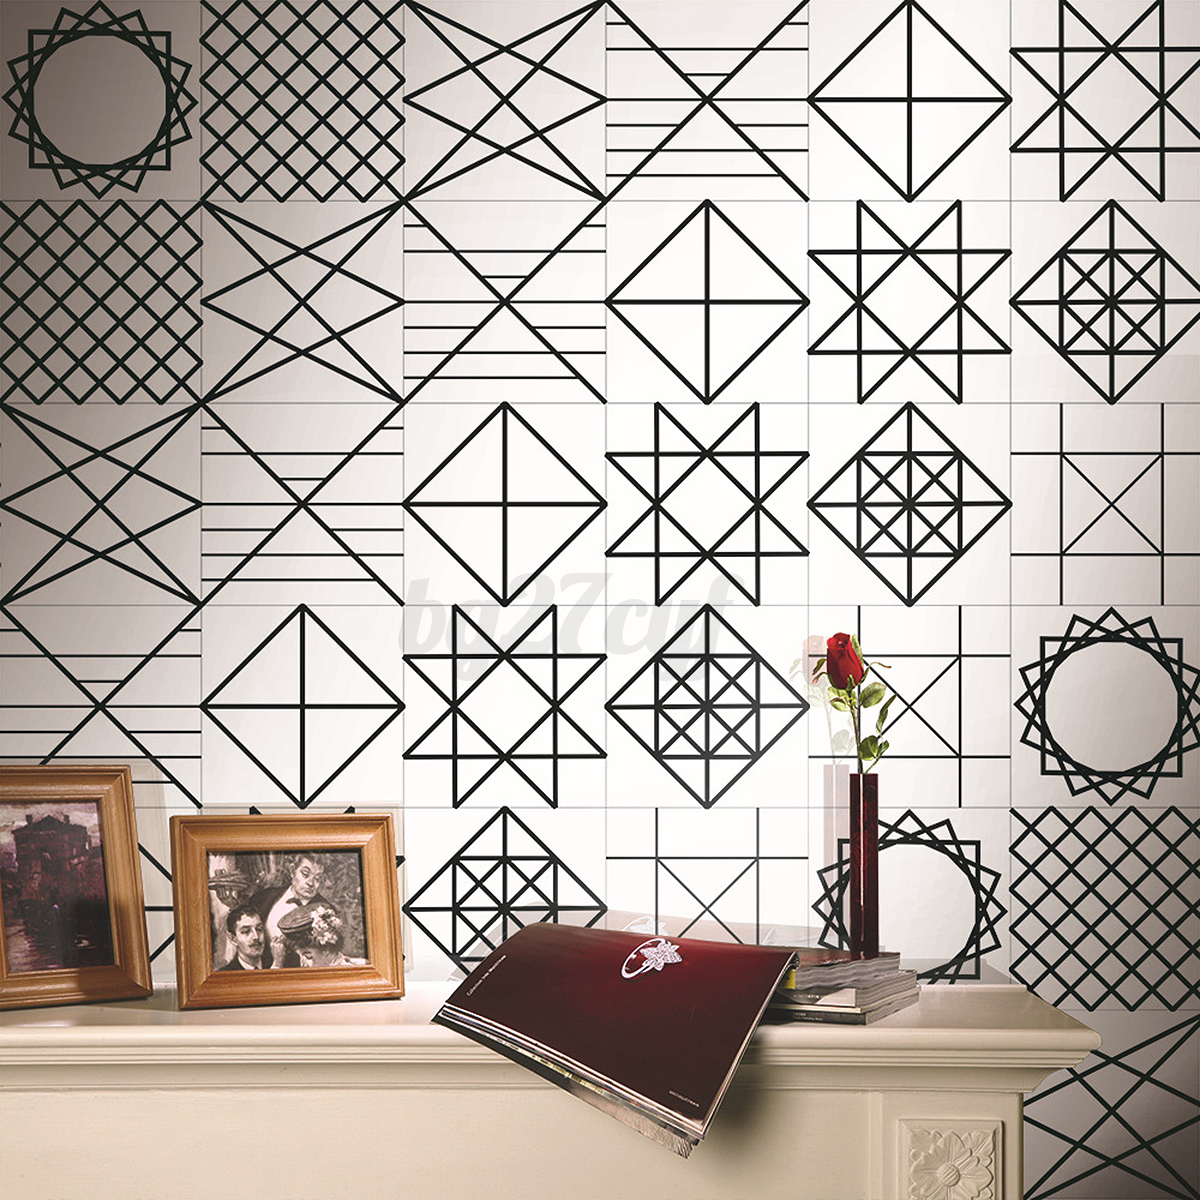 5m self adhesive tile vinyl art wall decal sticker diy - Stickers muraux cuisine ...